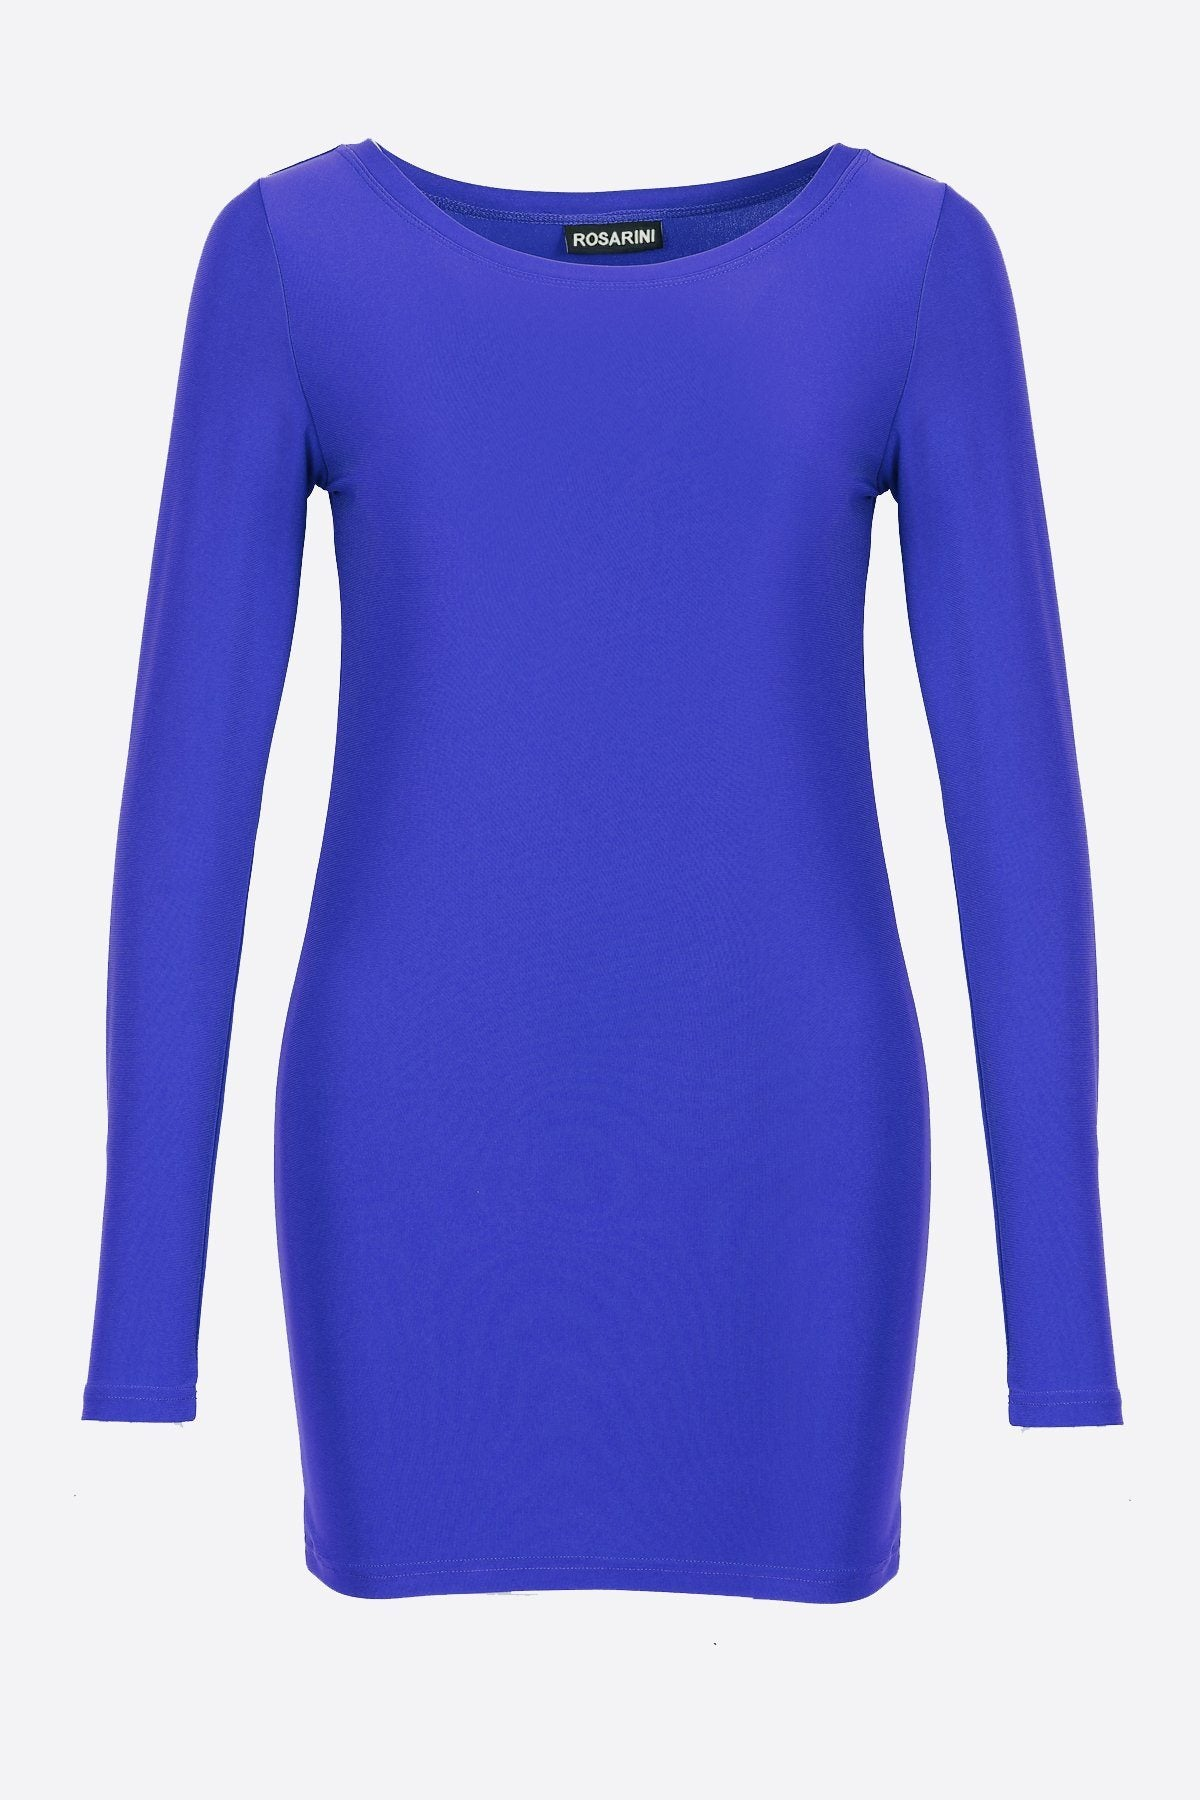 Women's Long Sleeve Crew Neck Top Blue Rosarini